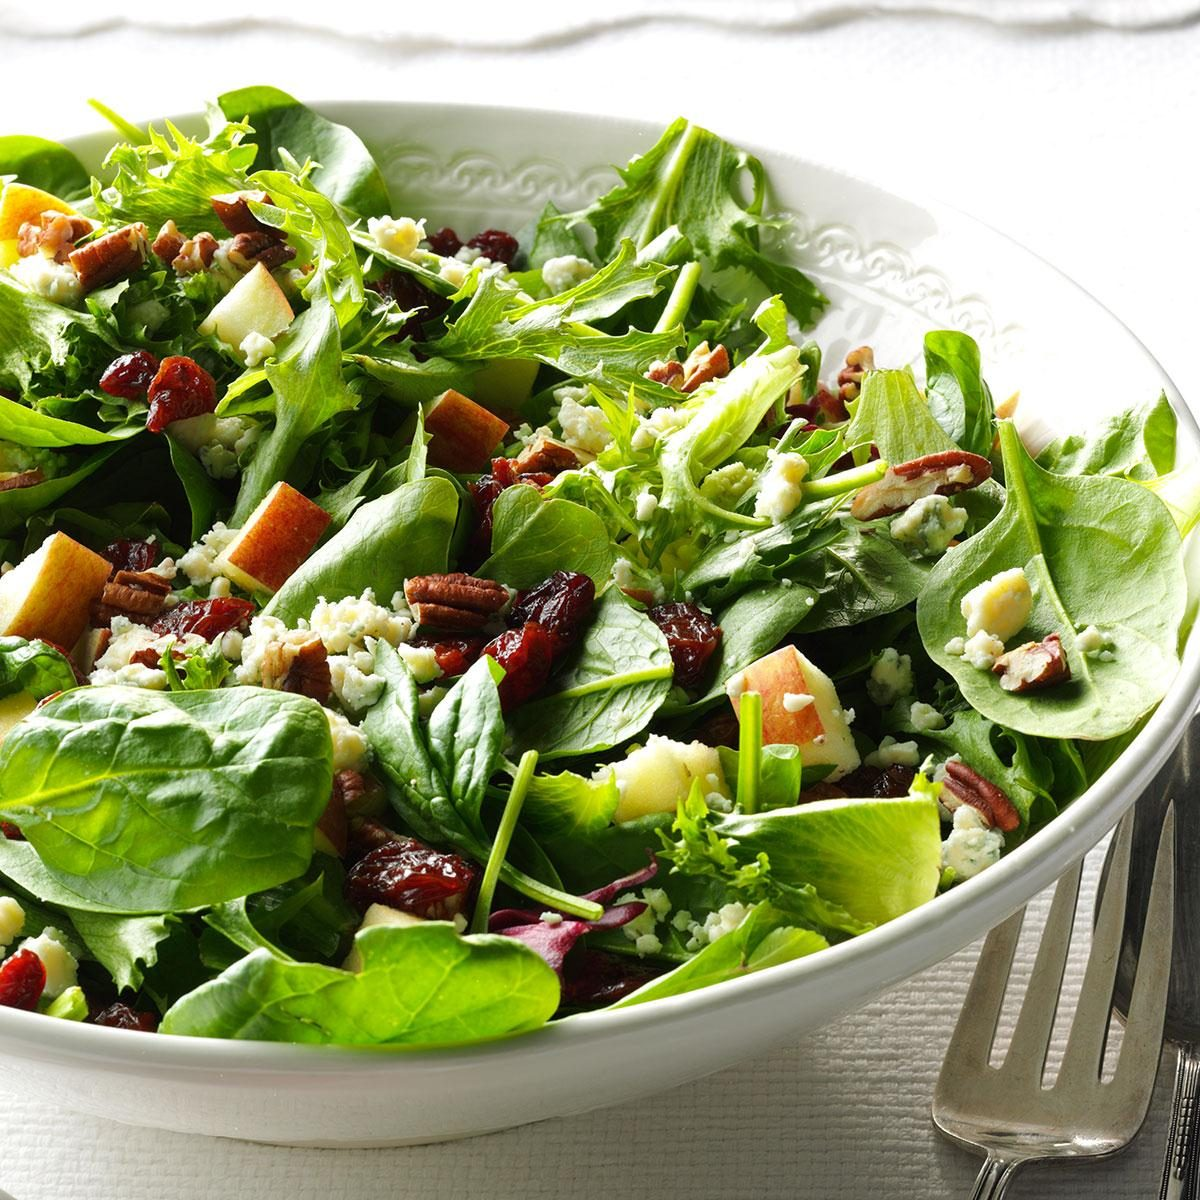 Michigan Cherry Salad with Spinach